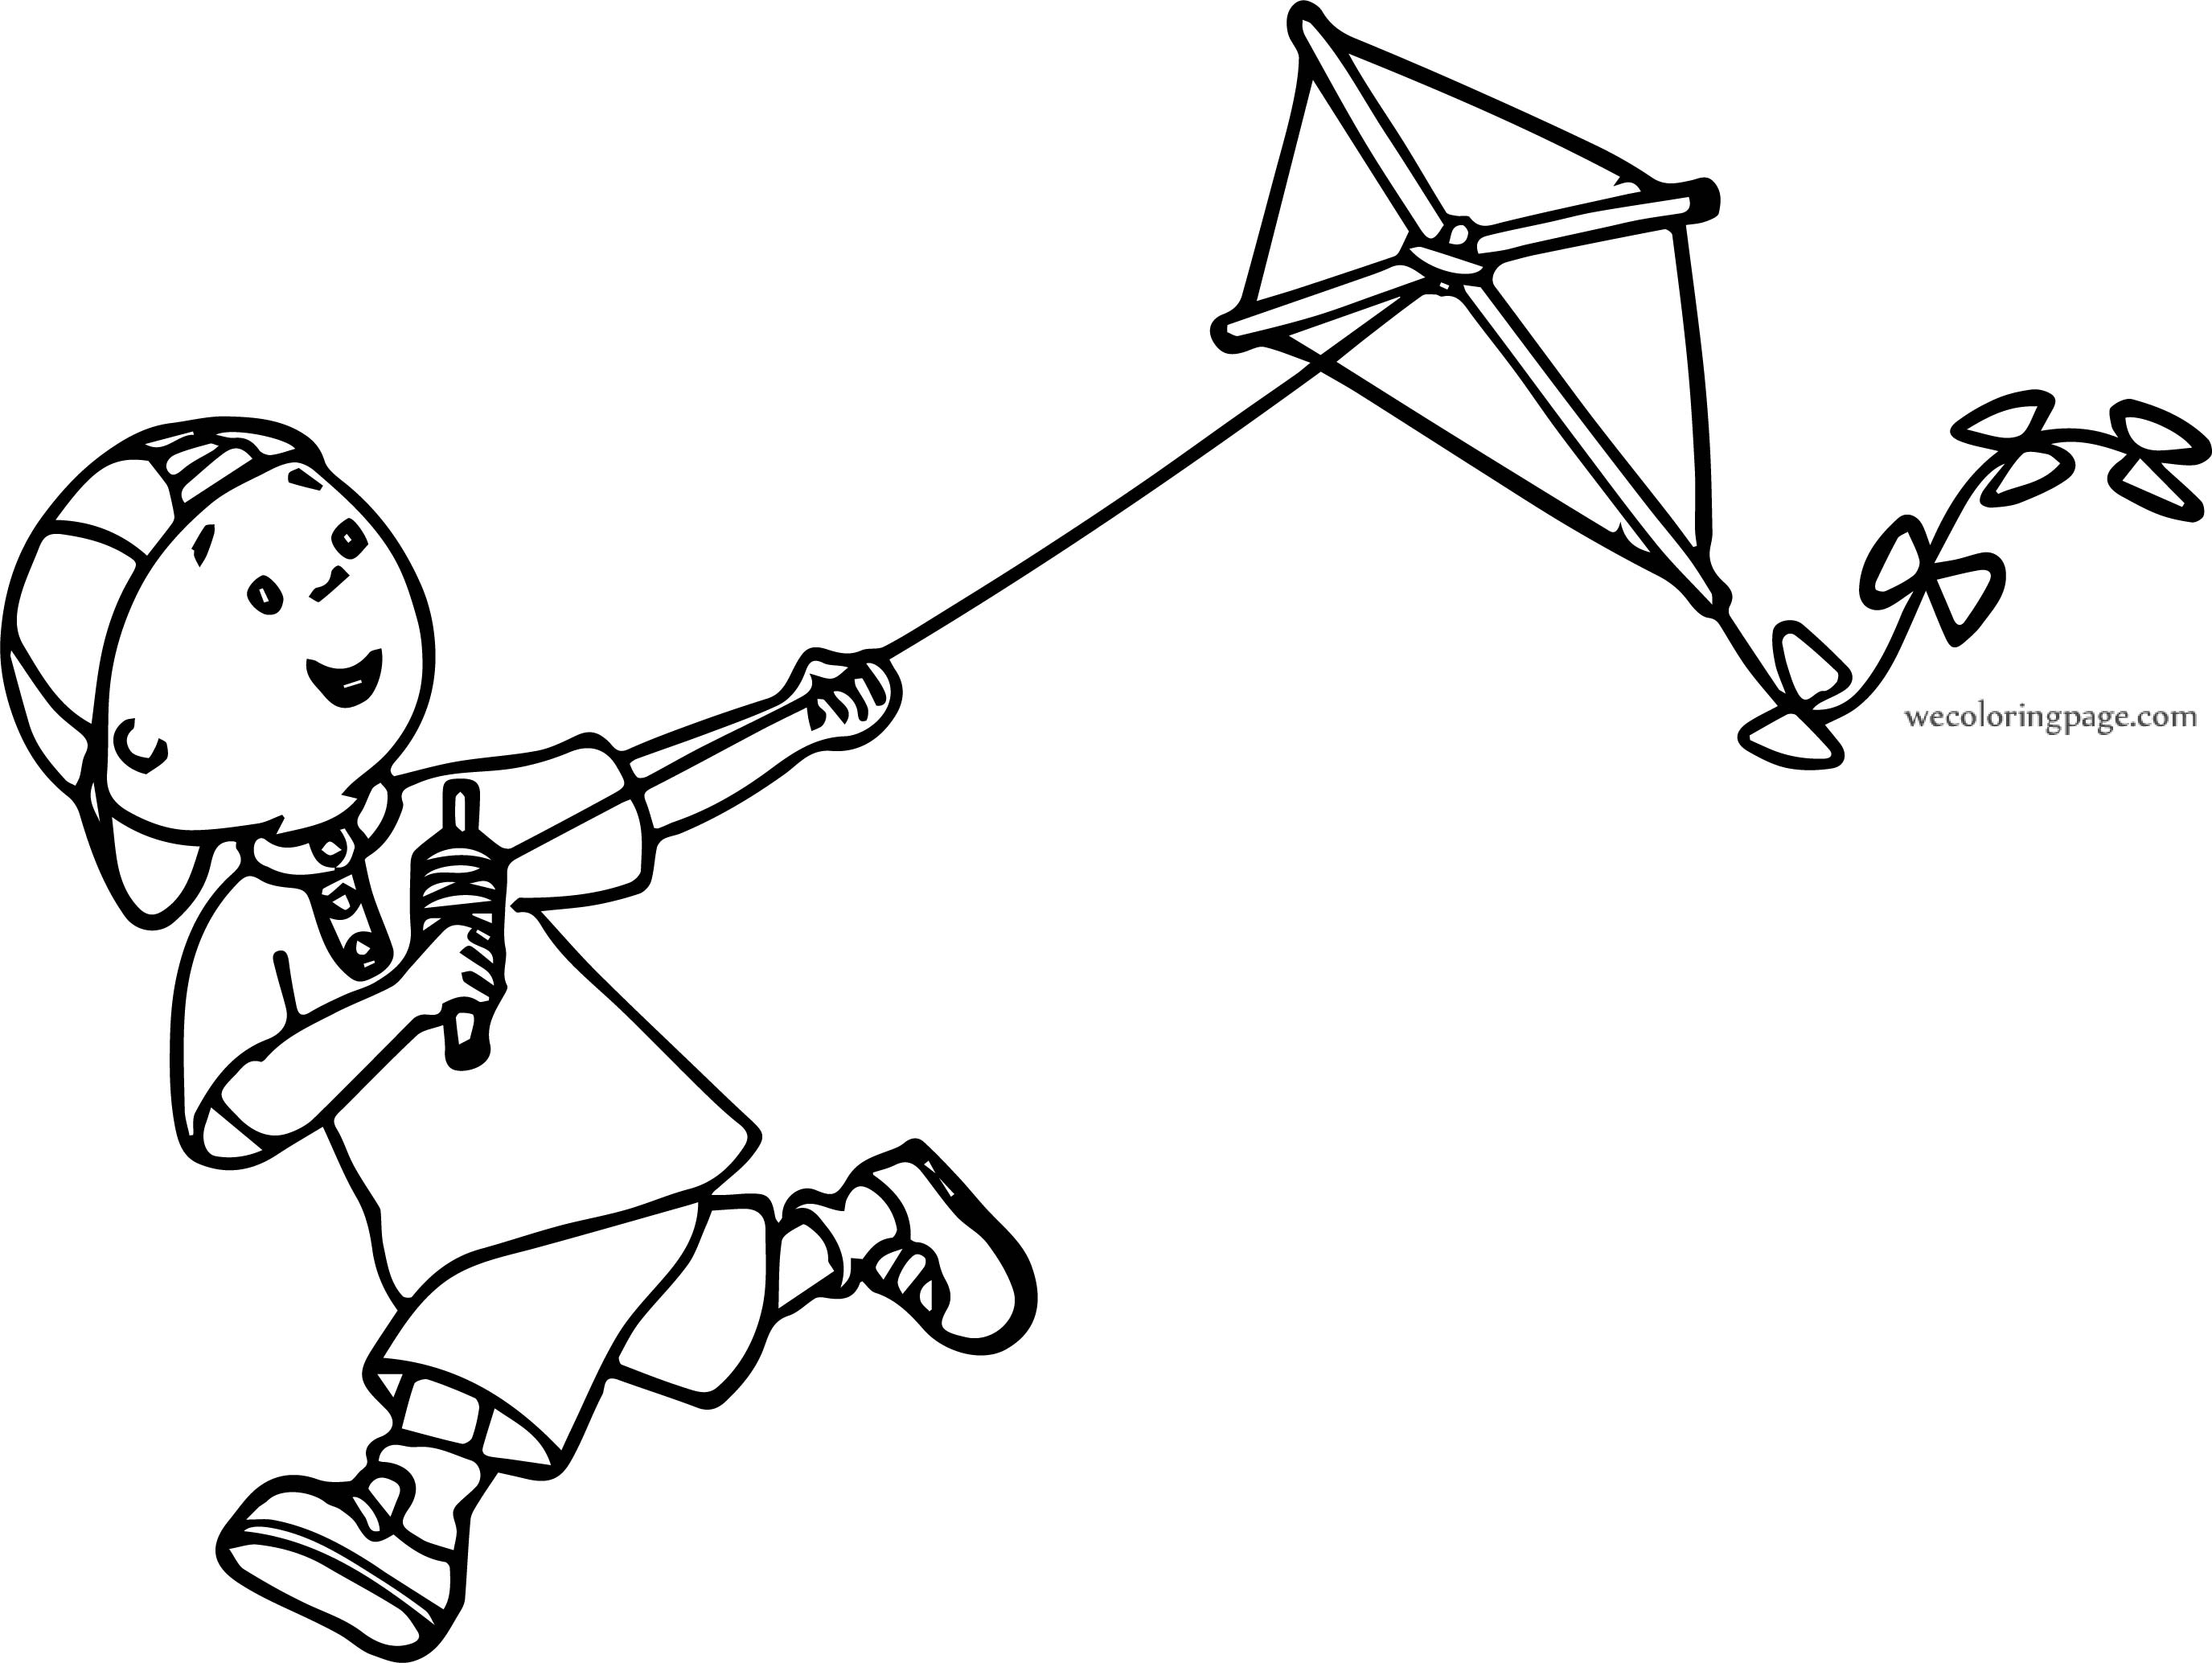 Caillou Kite Coloring Page